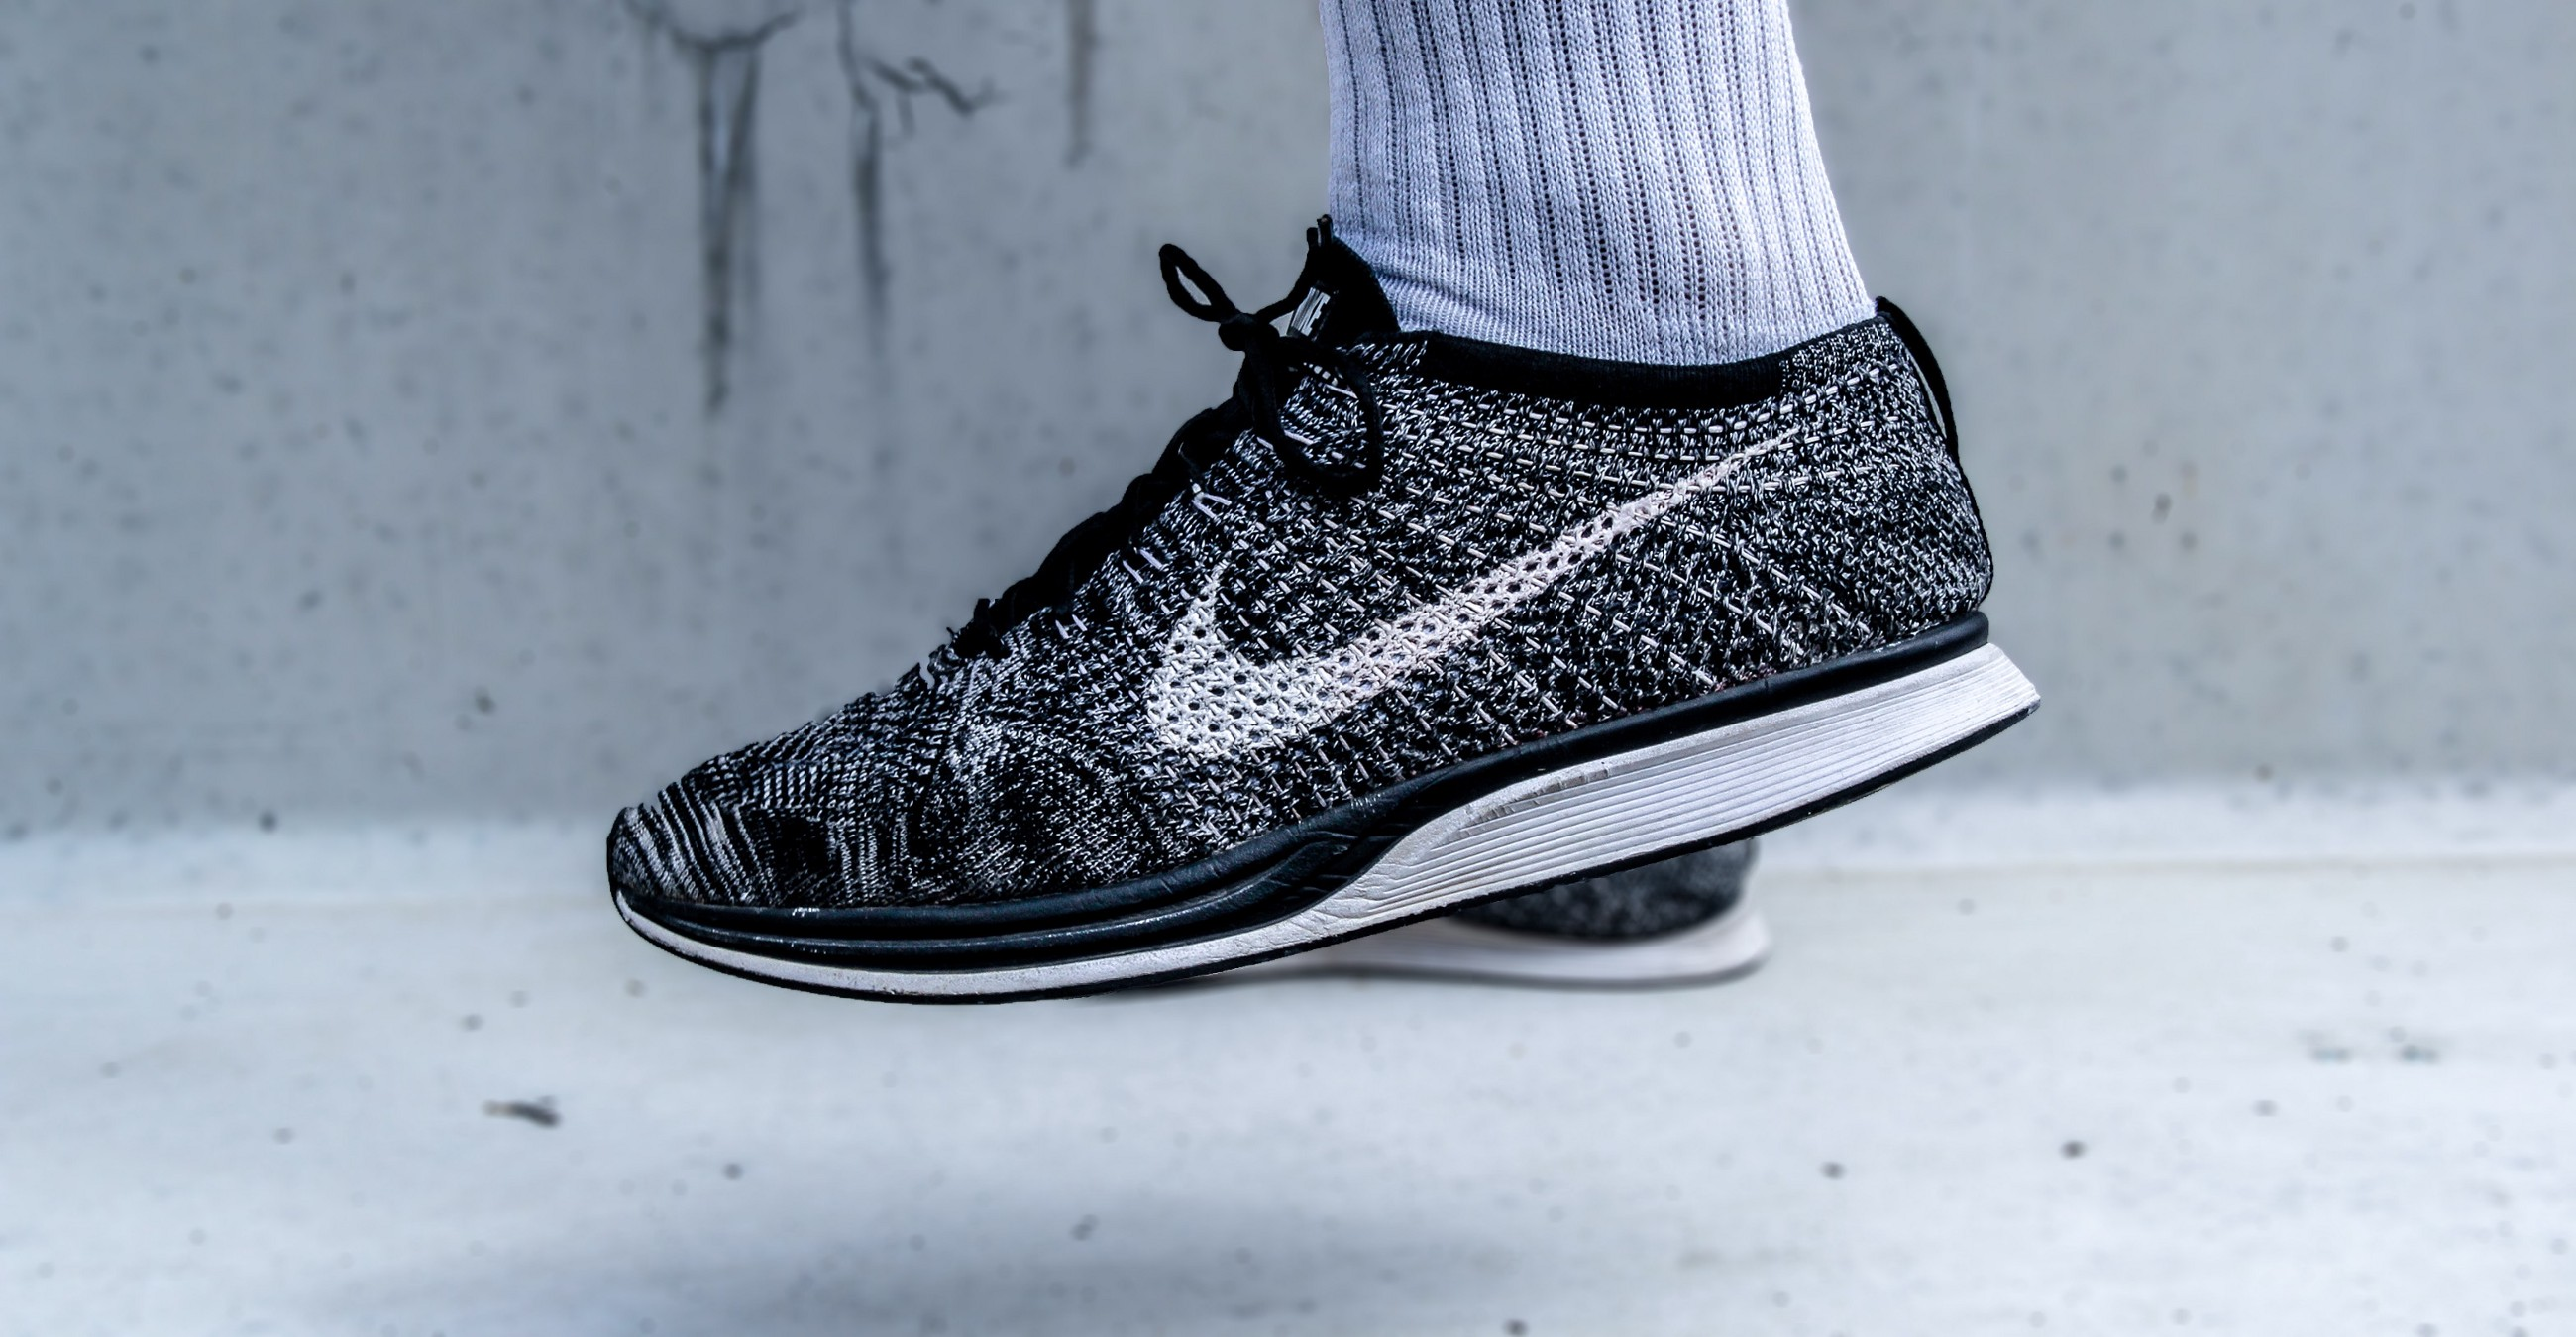 0bc3dace0341 The revolutionary Nike Flyknit technology – The Sneakulture – Medium